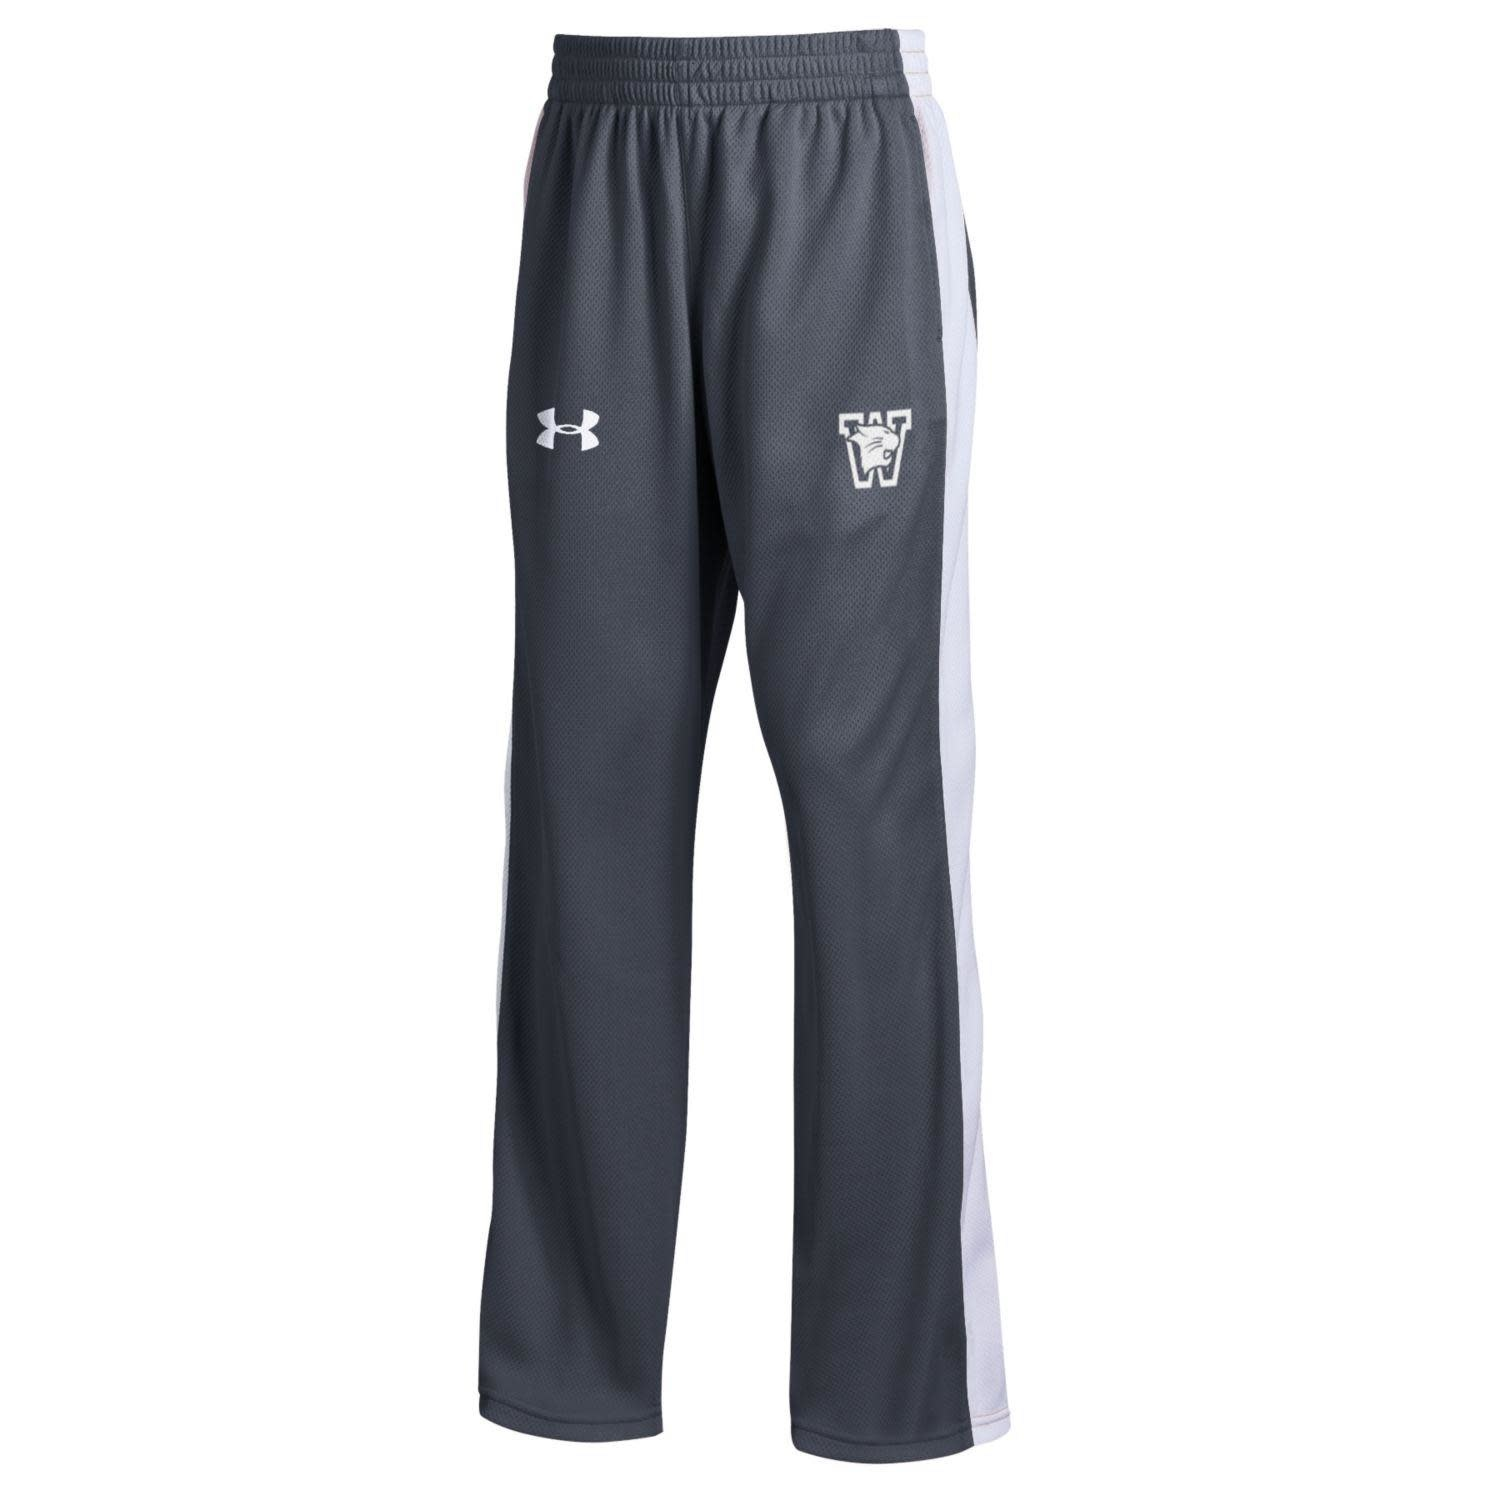 Under Armour Pants: UA Youth Medium Track Pant Charcoal